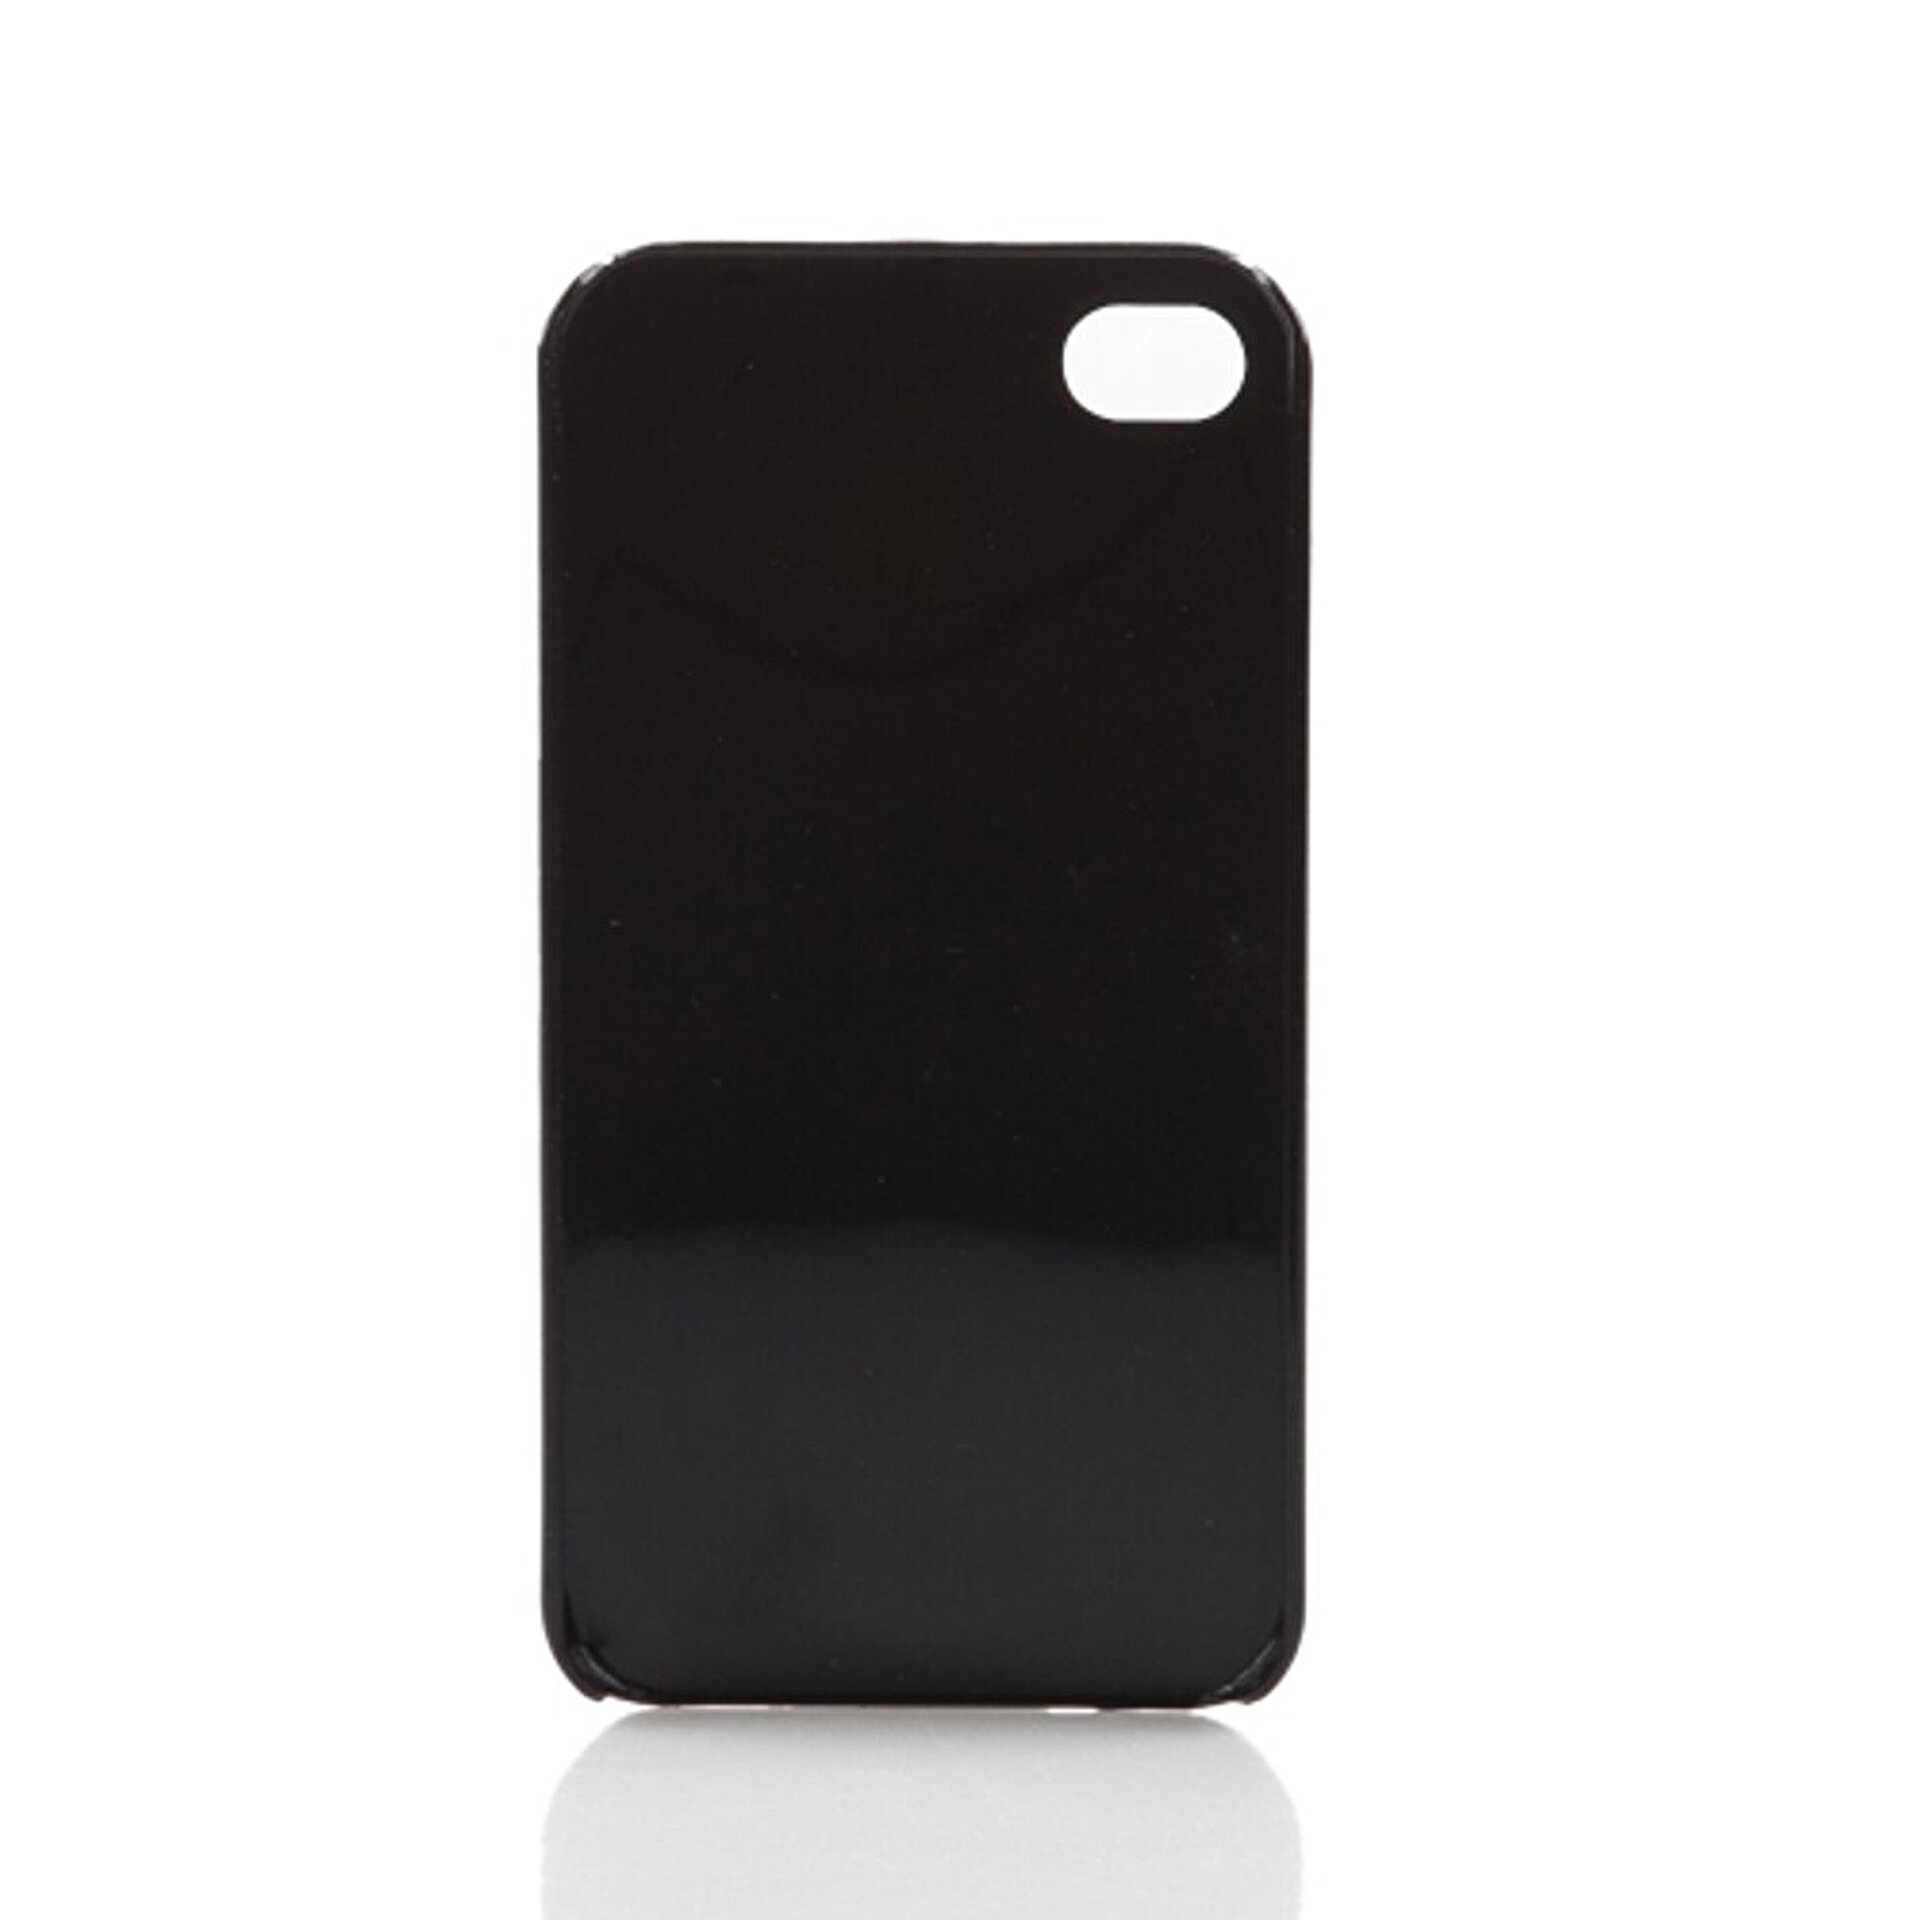 Picture of BiggDesign iPhone 5/5S Siyah Kapak Şemsiyeler